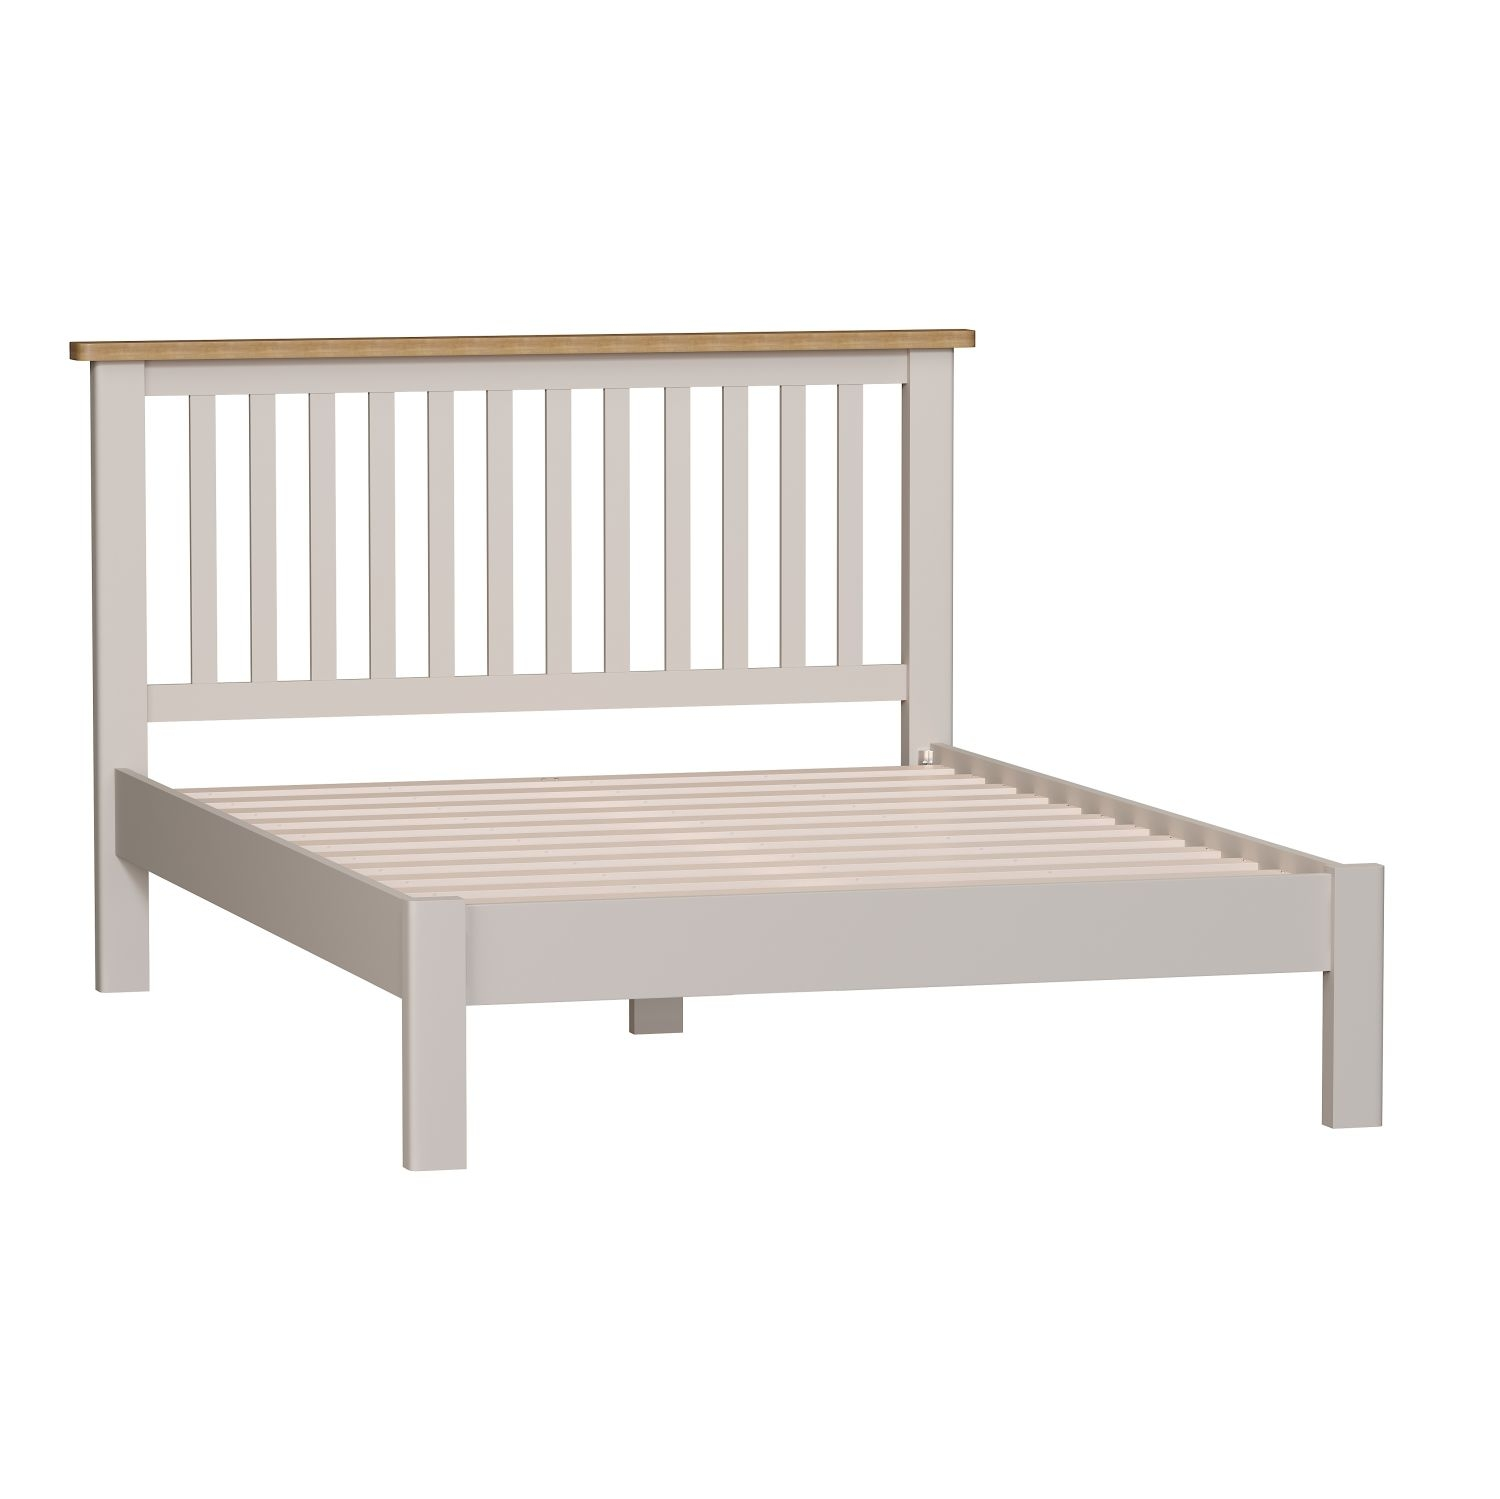 Image of Casa Portland Bed Frame, Double